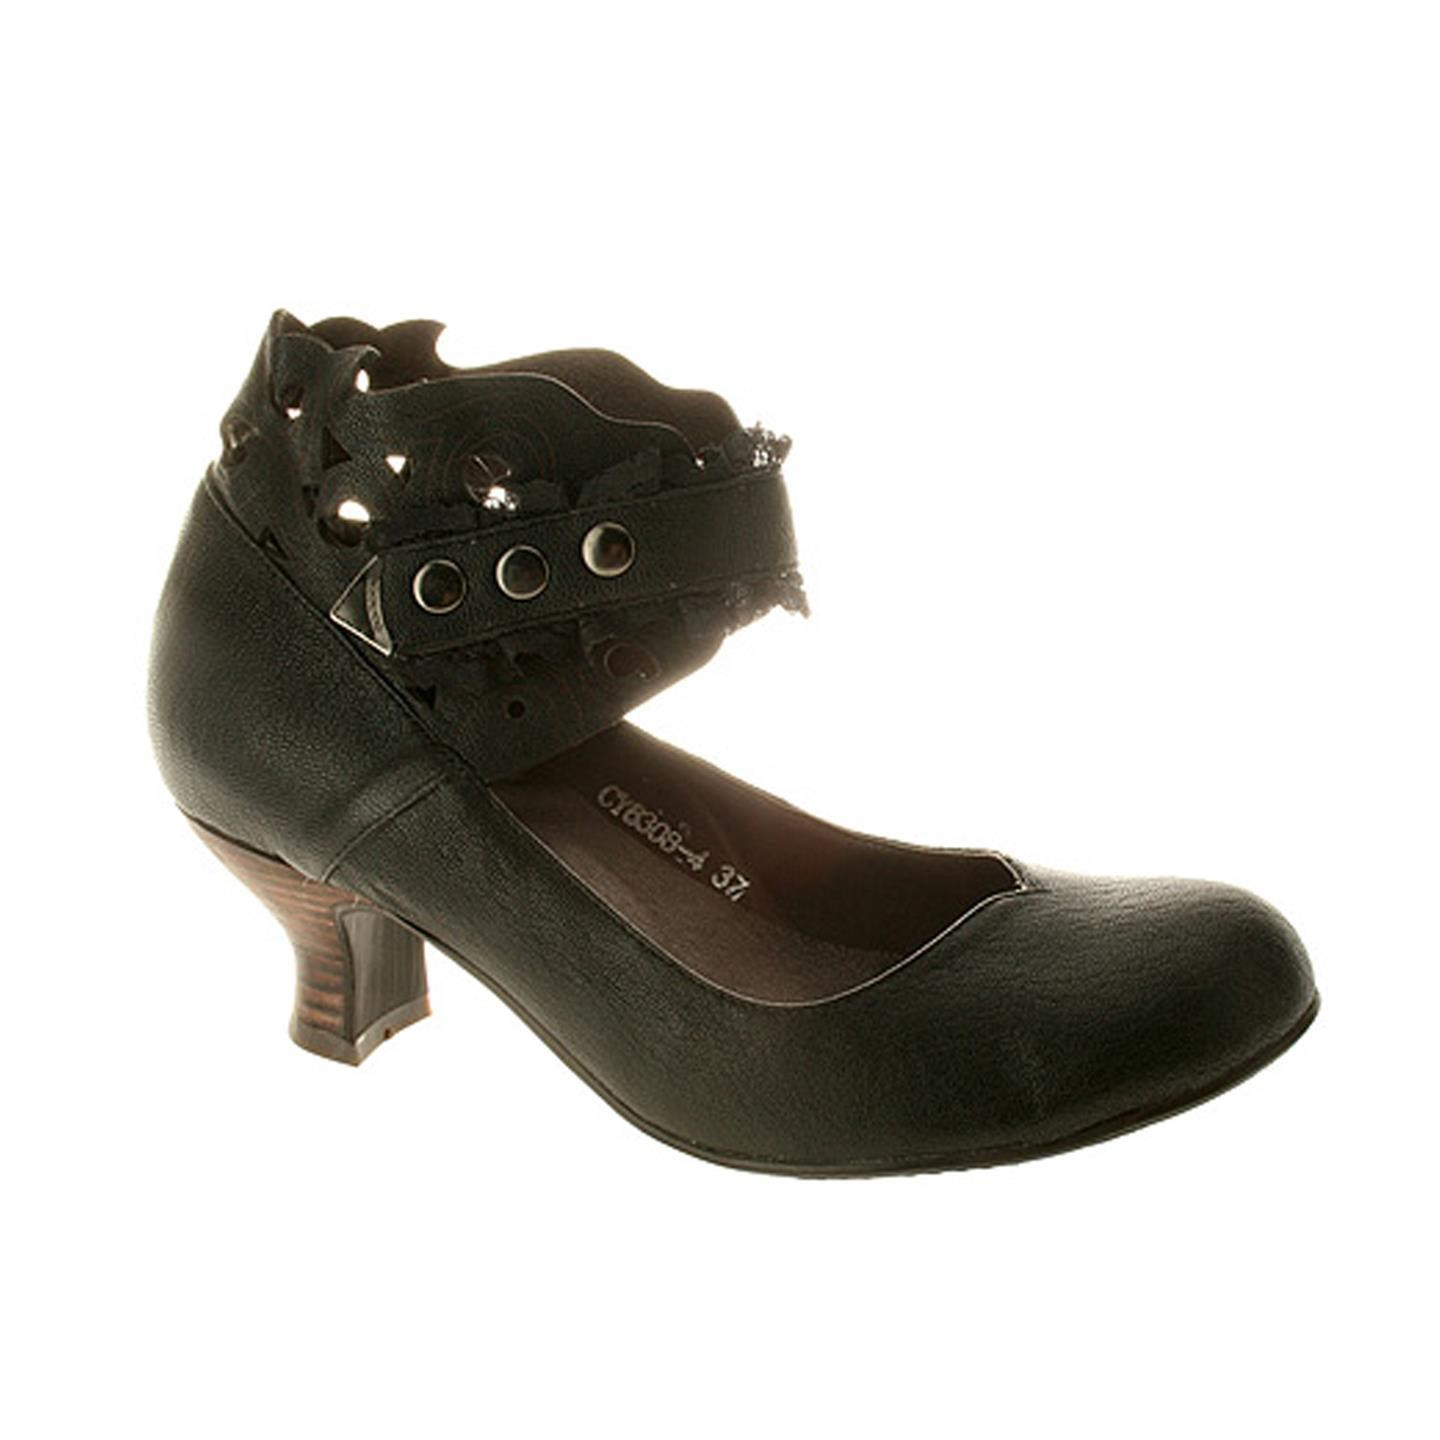 Uptown By Spring Step Black Leather Shoes 36 EU   6 US Women by Spring Step